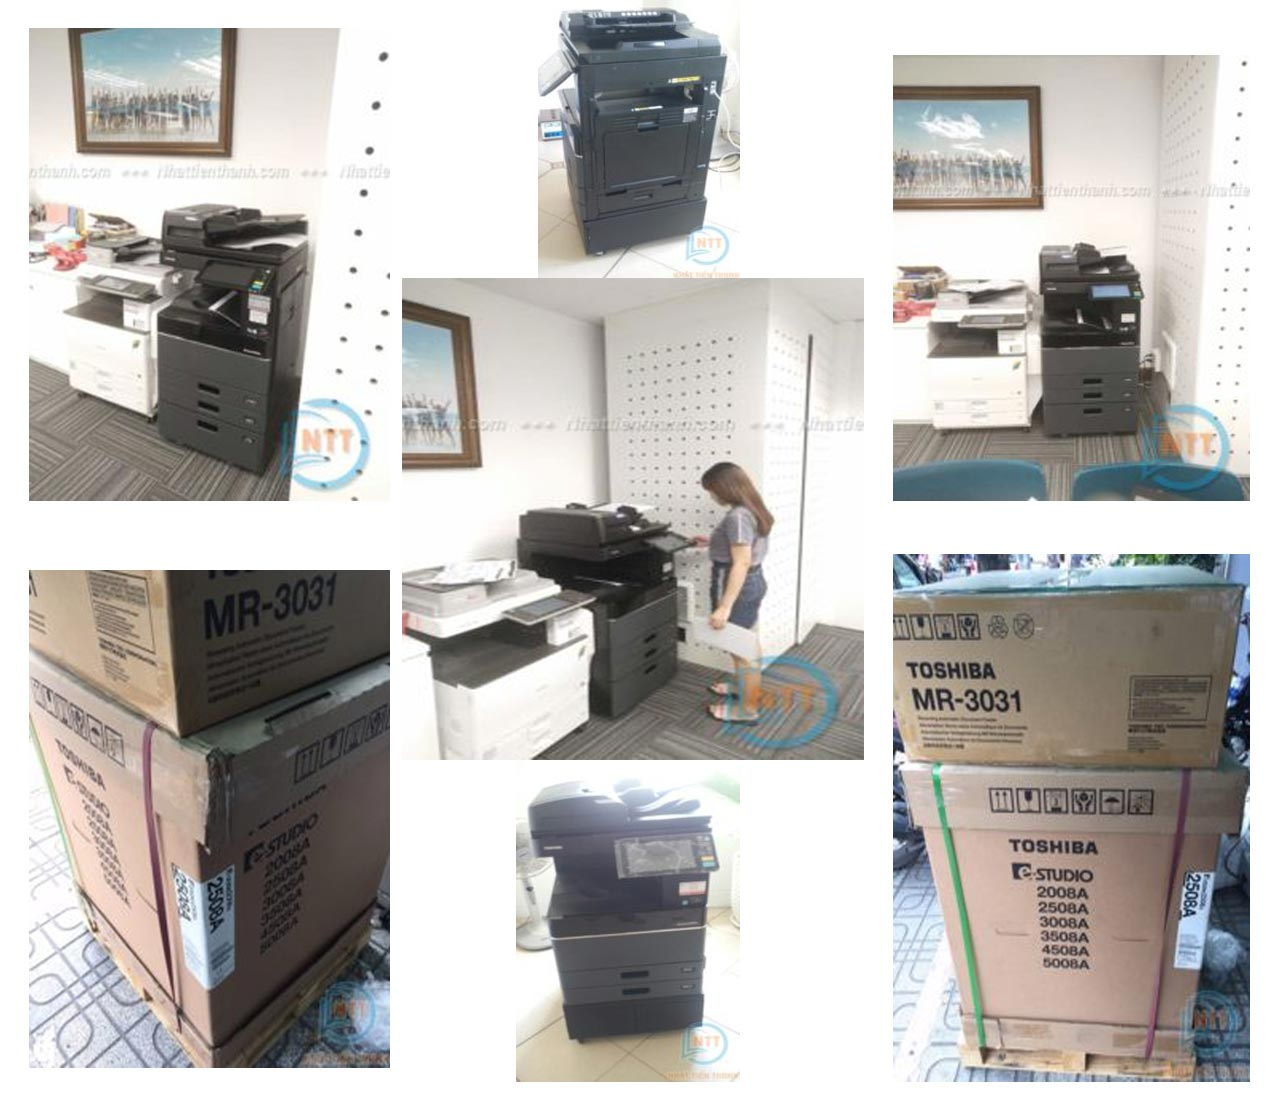 may-photocopy-toshiba-e-studio-3008A